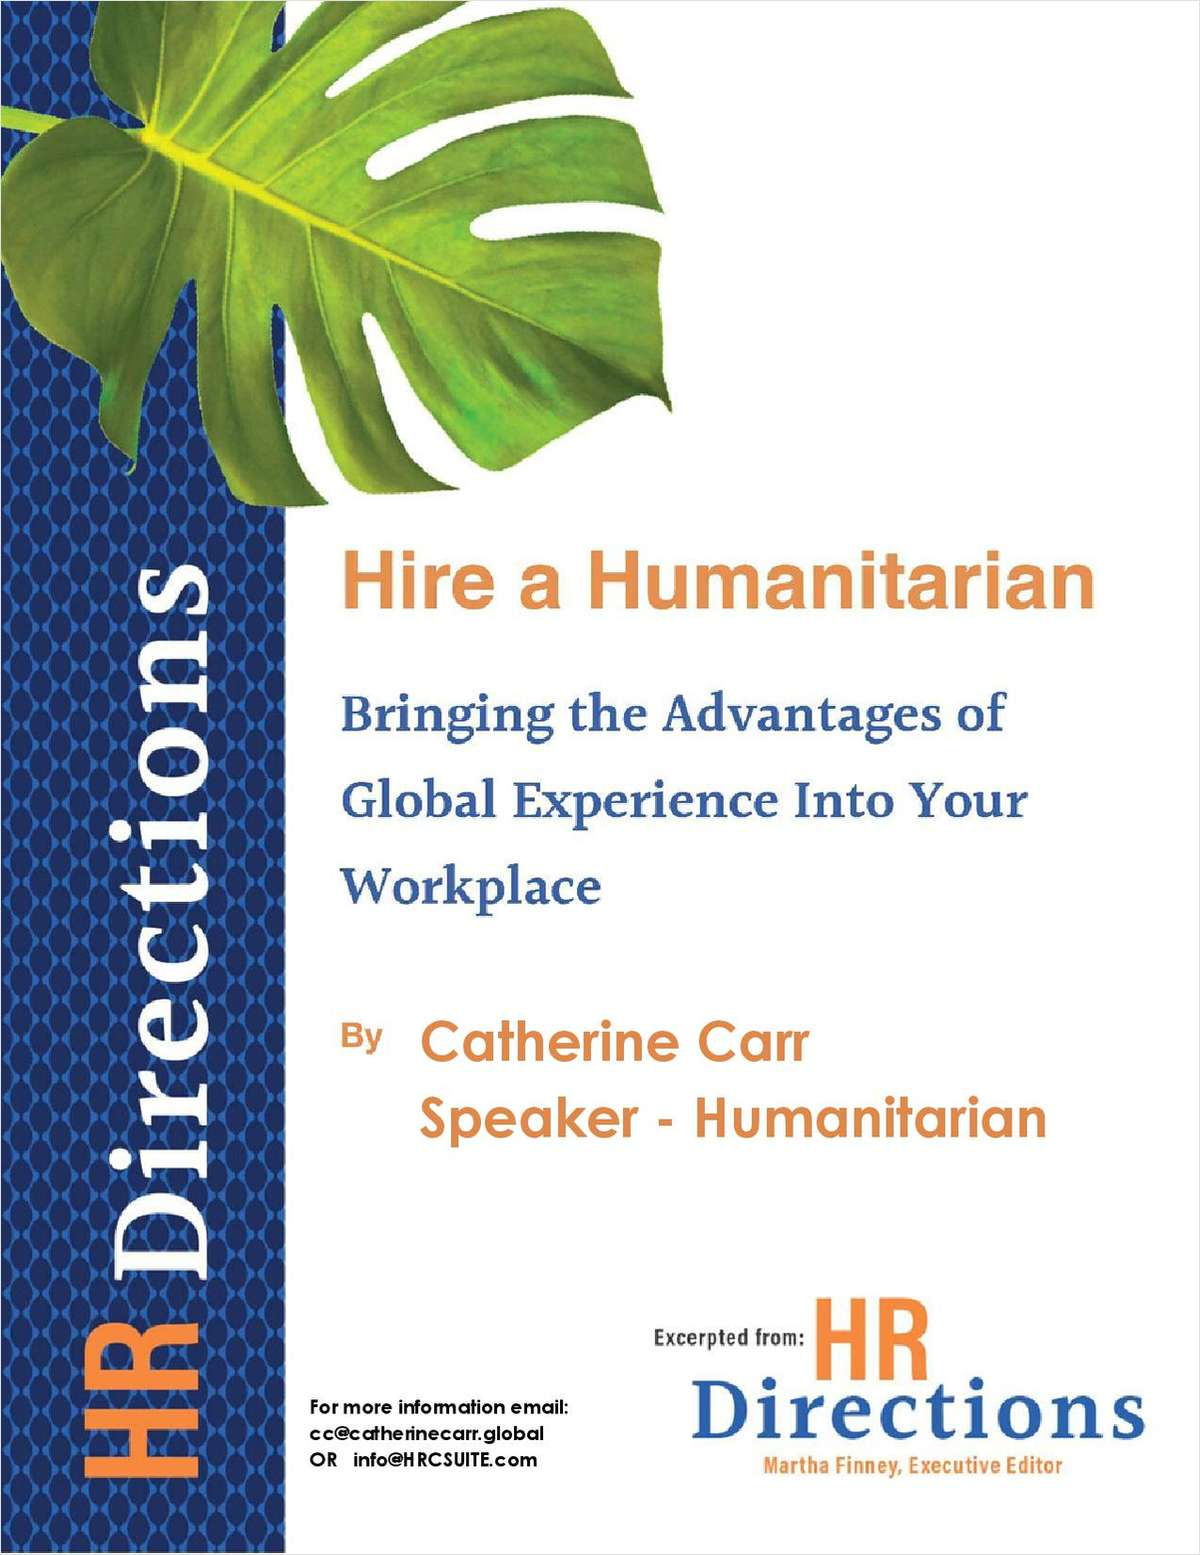 Hire a Humanitarian- HR Directions